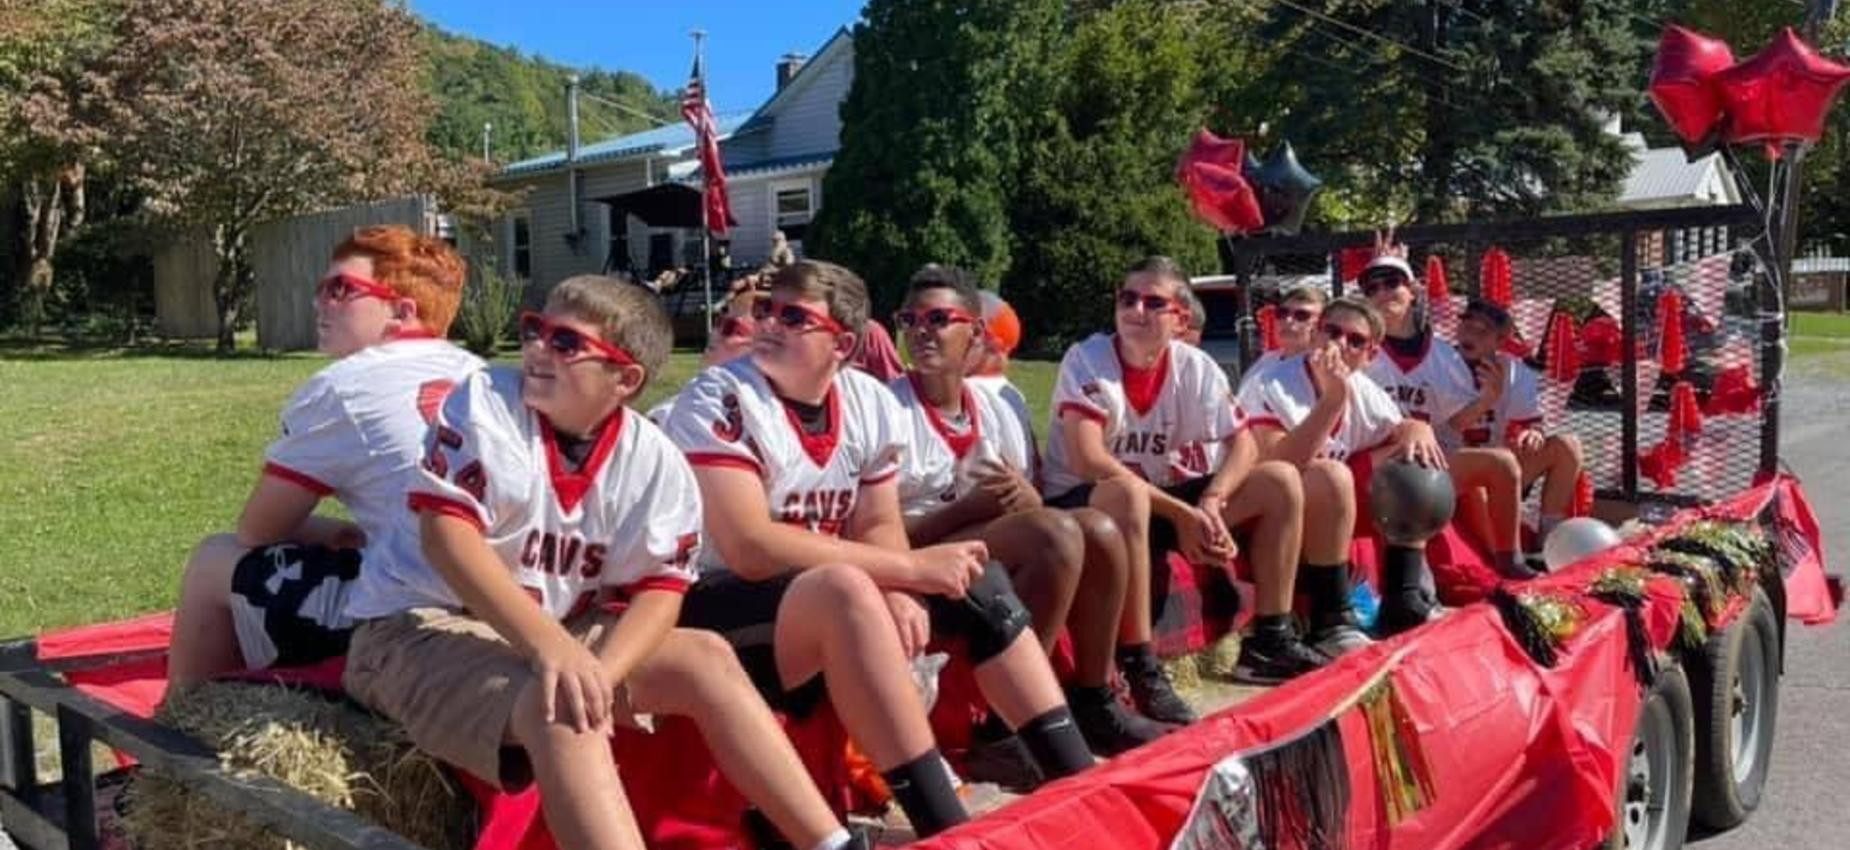 A group of football players rides on a float in a parade.